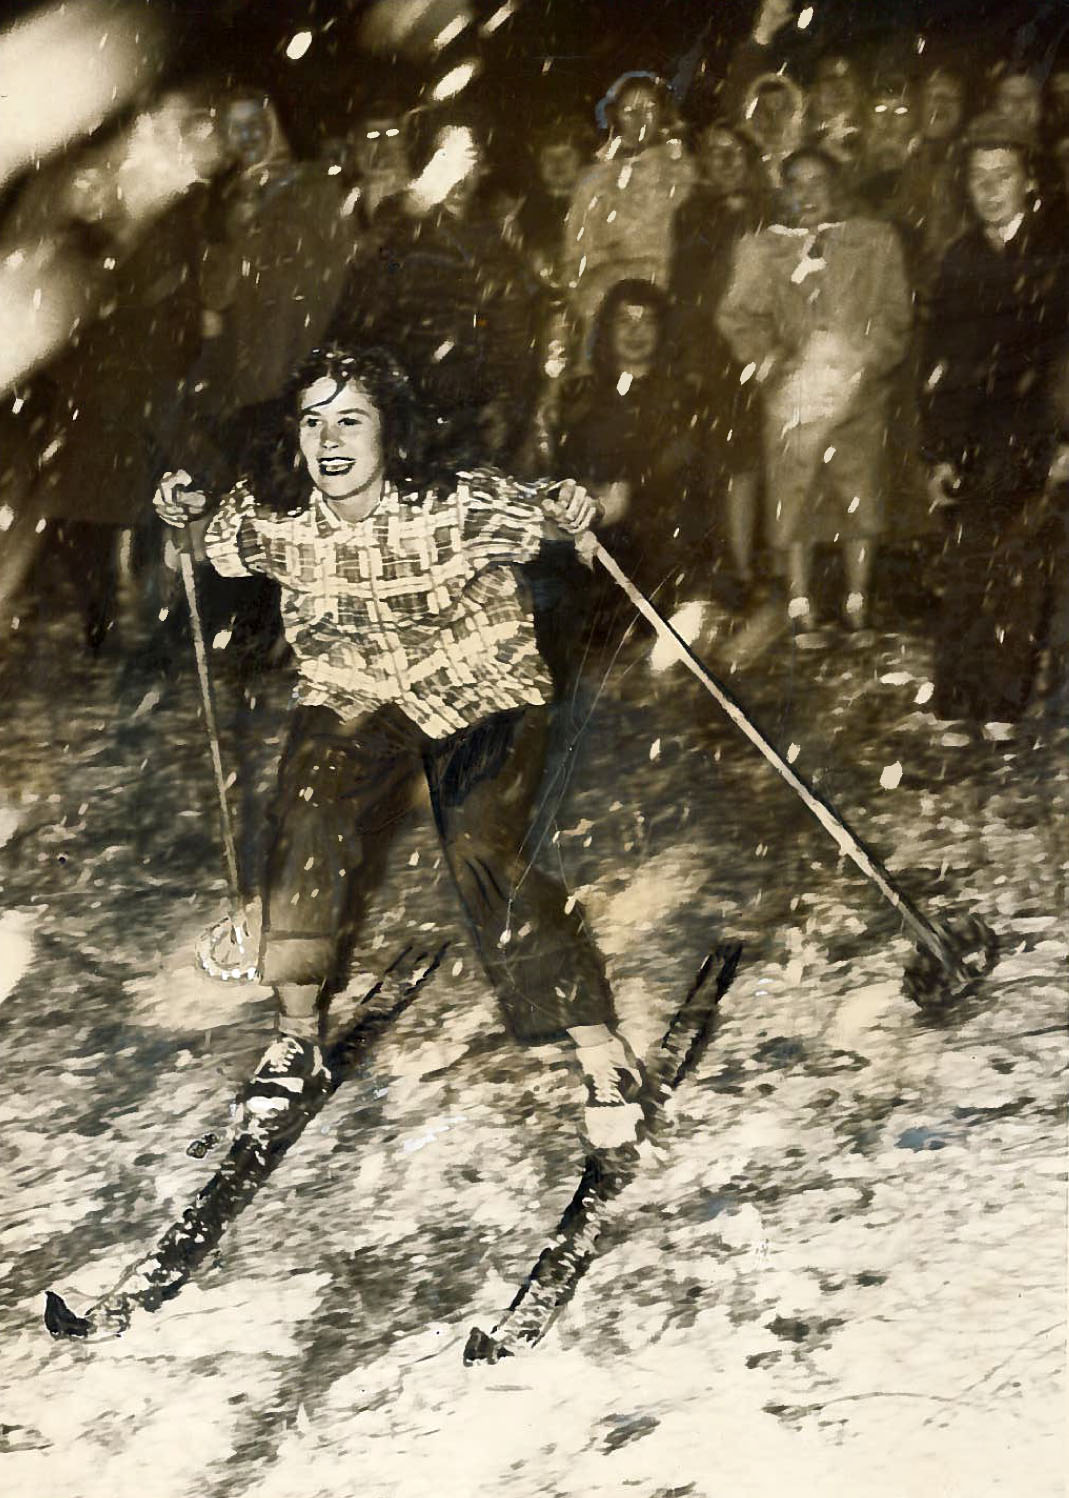 Skiing on the UCLA campus during the 1949 snowstorm